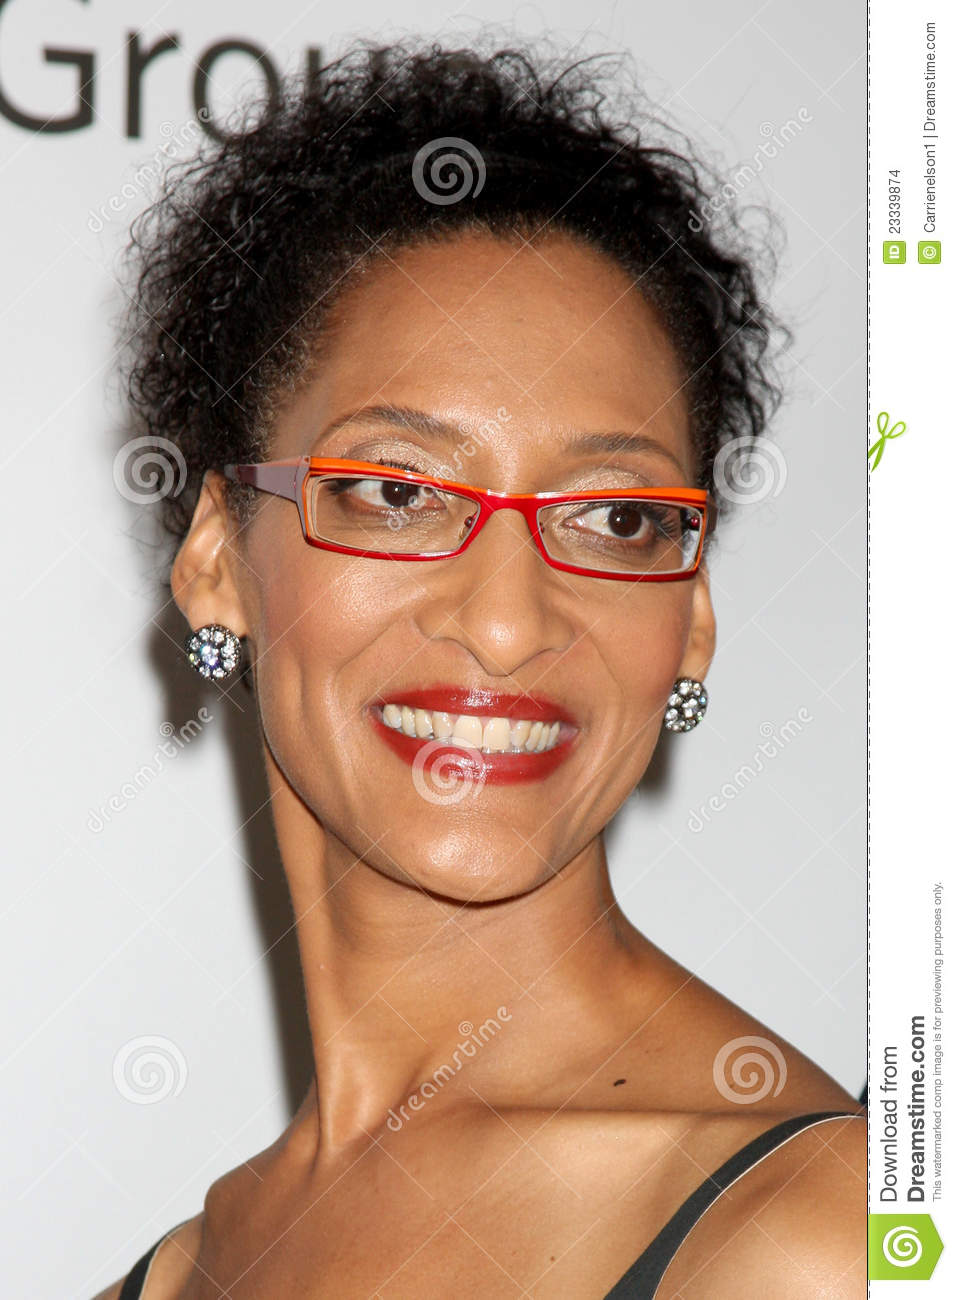 carla hall instagram